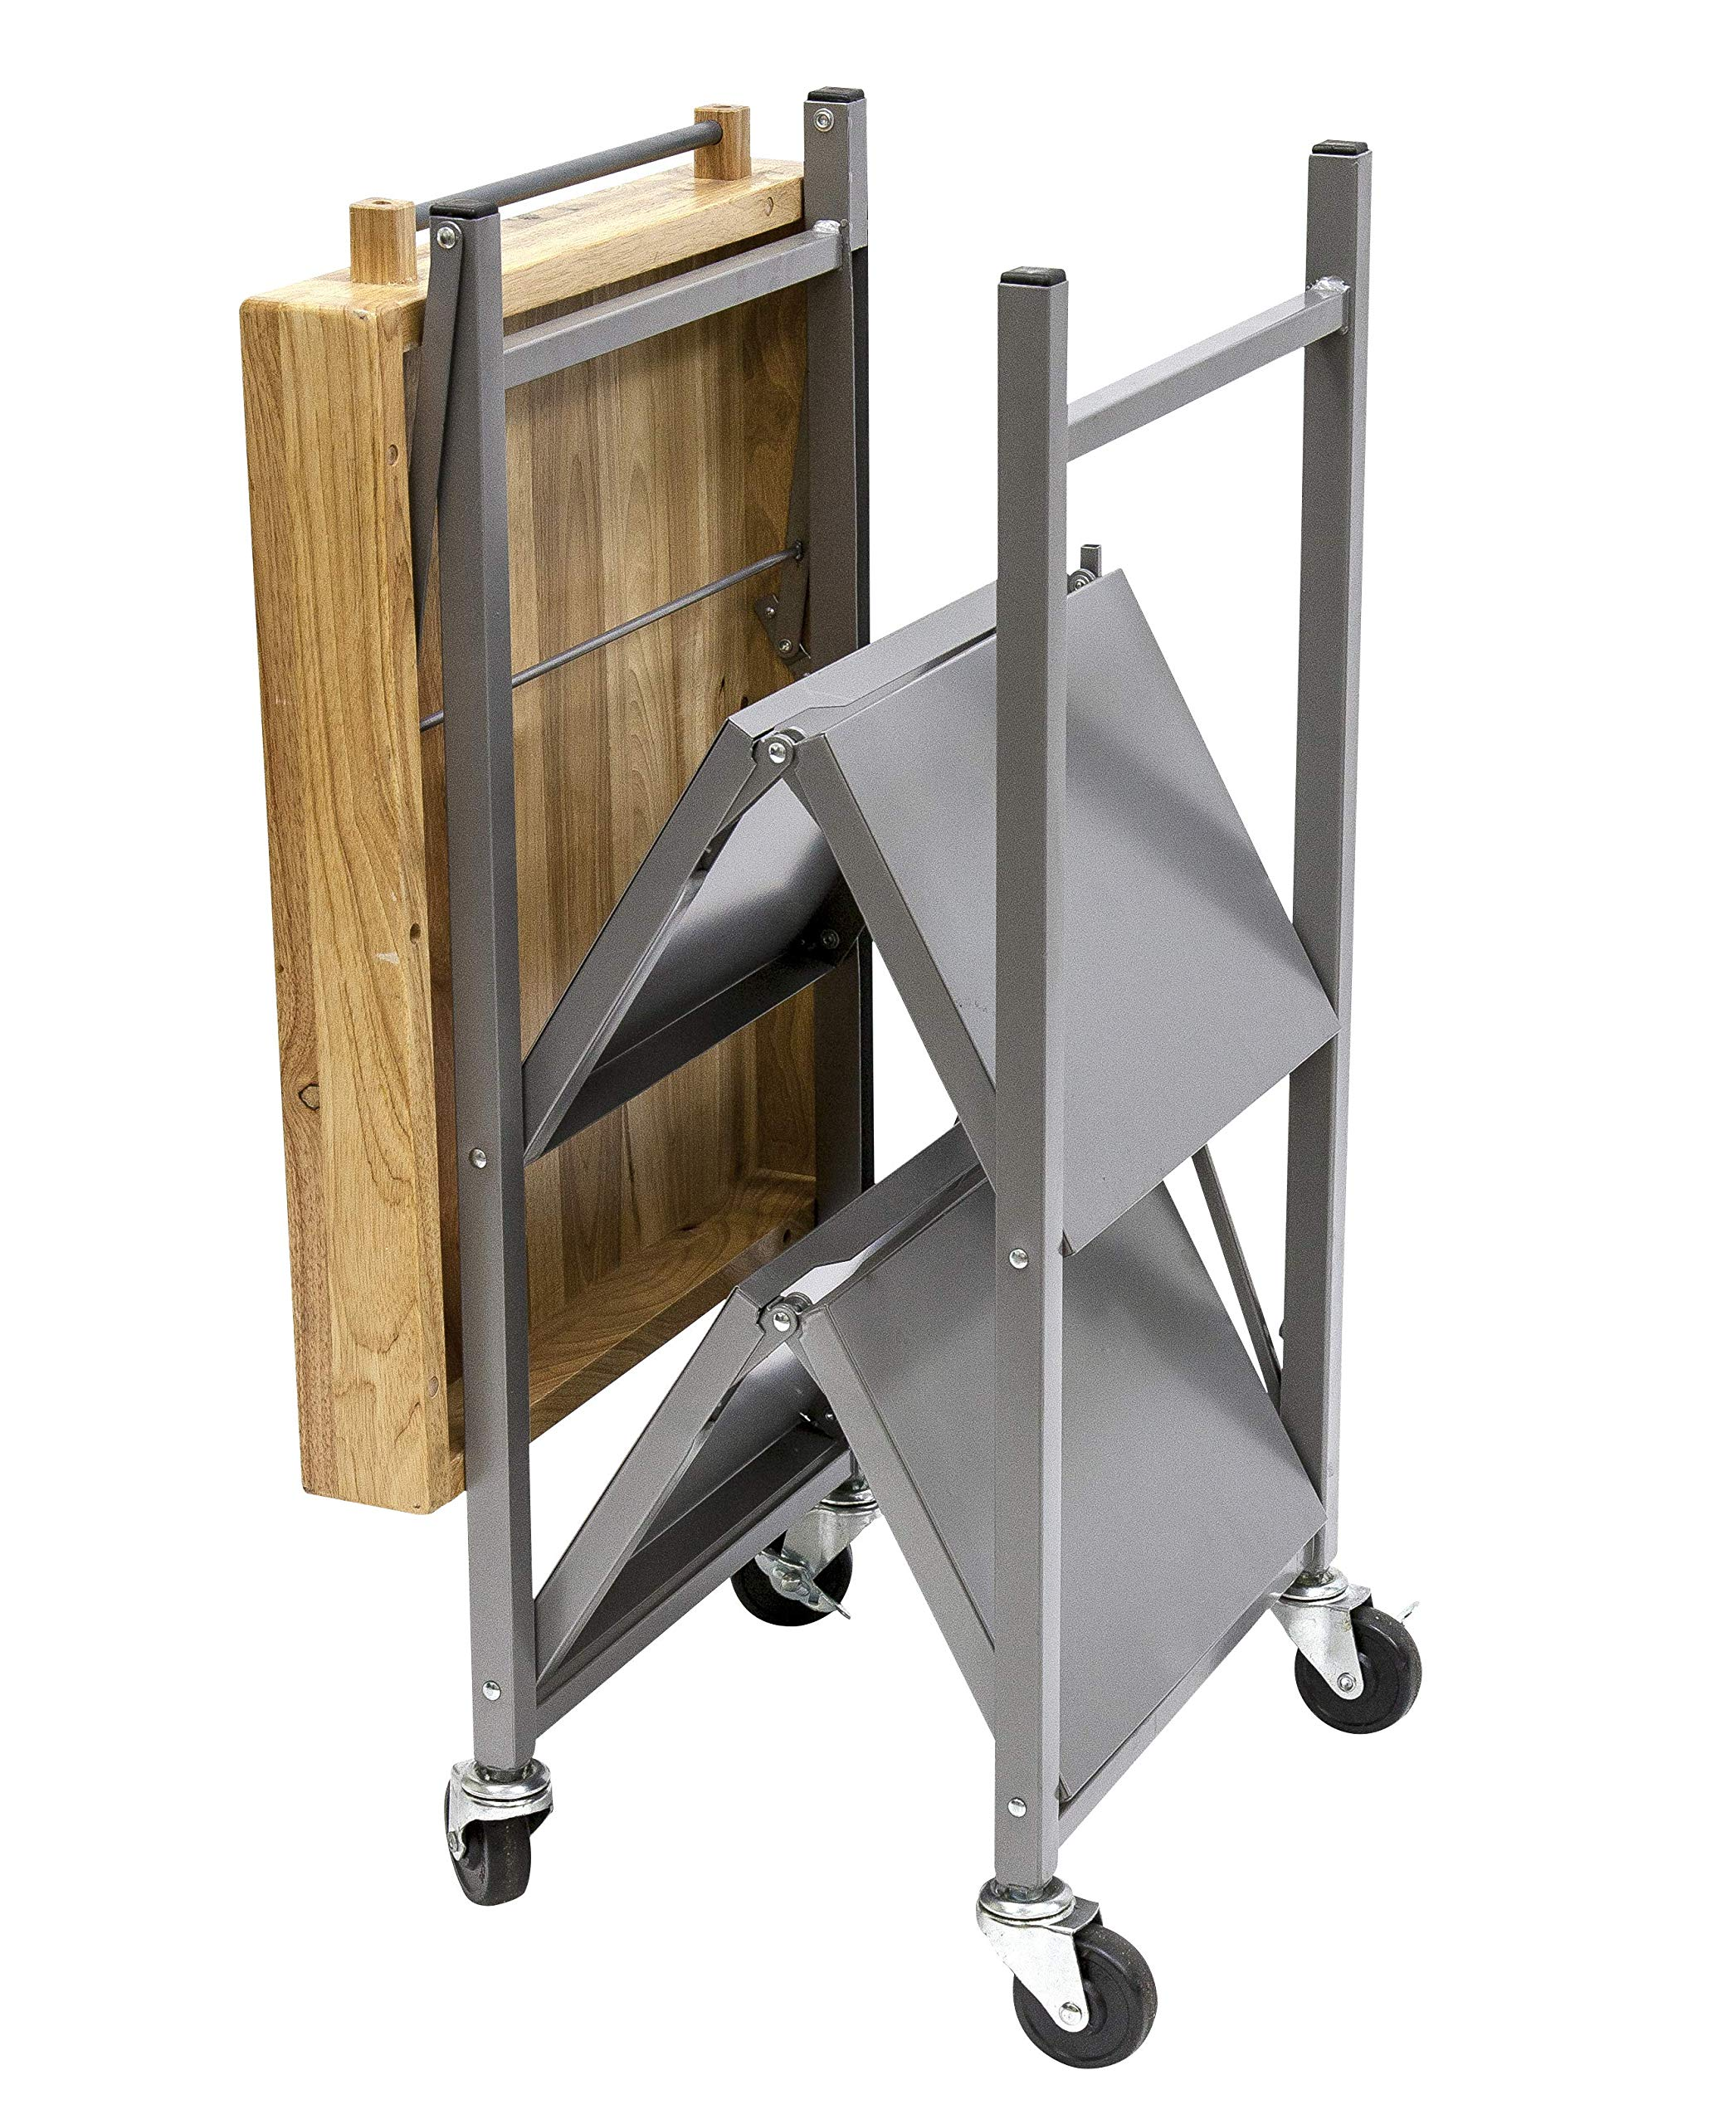 Origami Foldable Rolling Kitchen Island Cart, Food Serving Cart, 3-Tier Storage Shelf with Wood Top, Microwave Stand, Heavy Duty, Silver by Origami (Image #2)